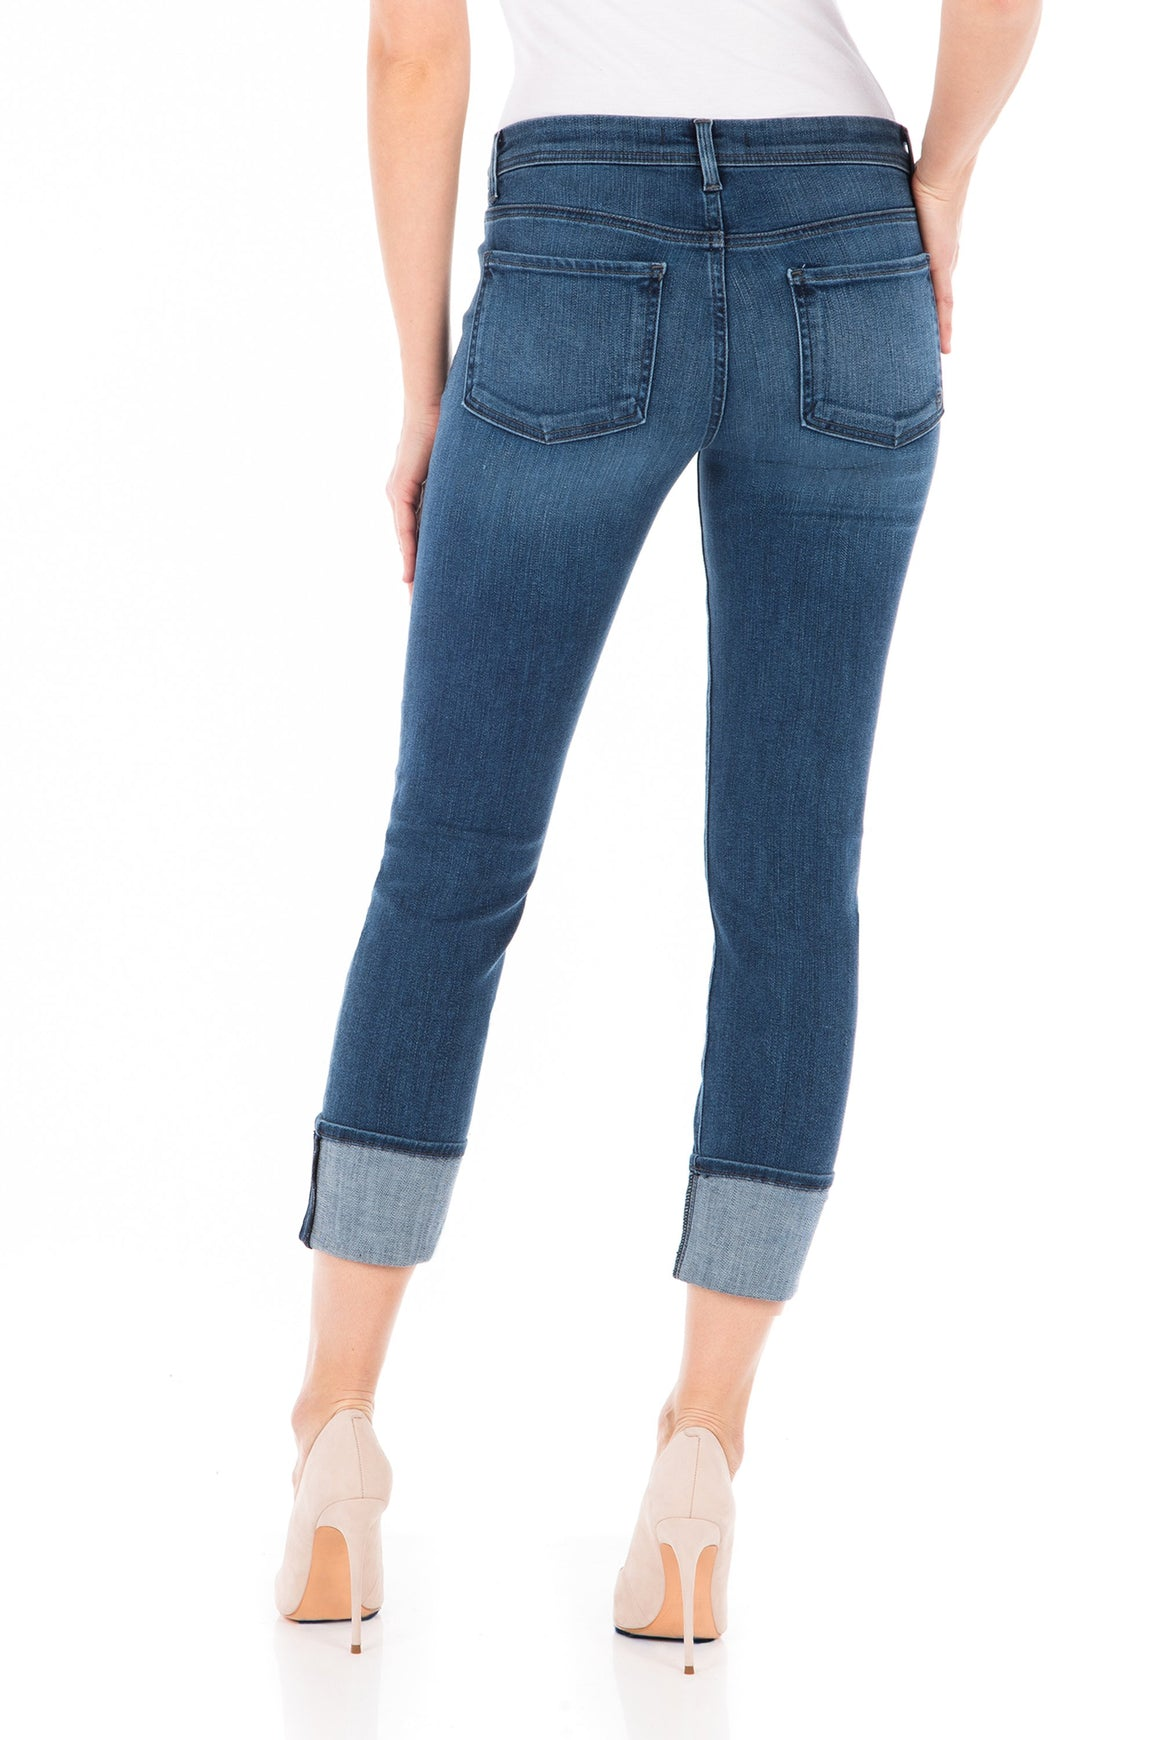 Fidelity Denim Stevie Crop